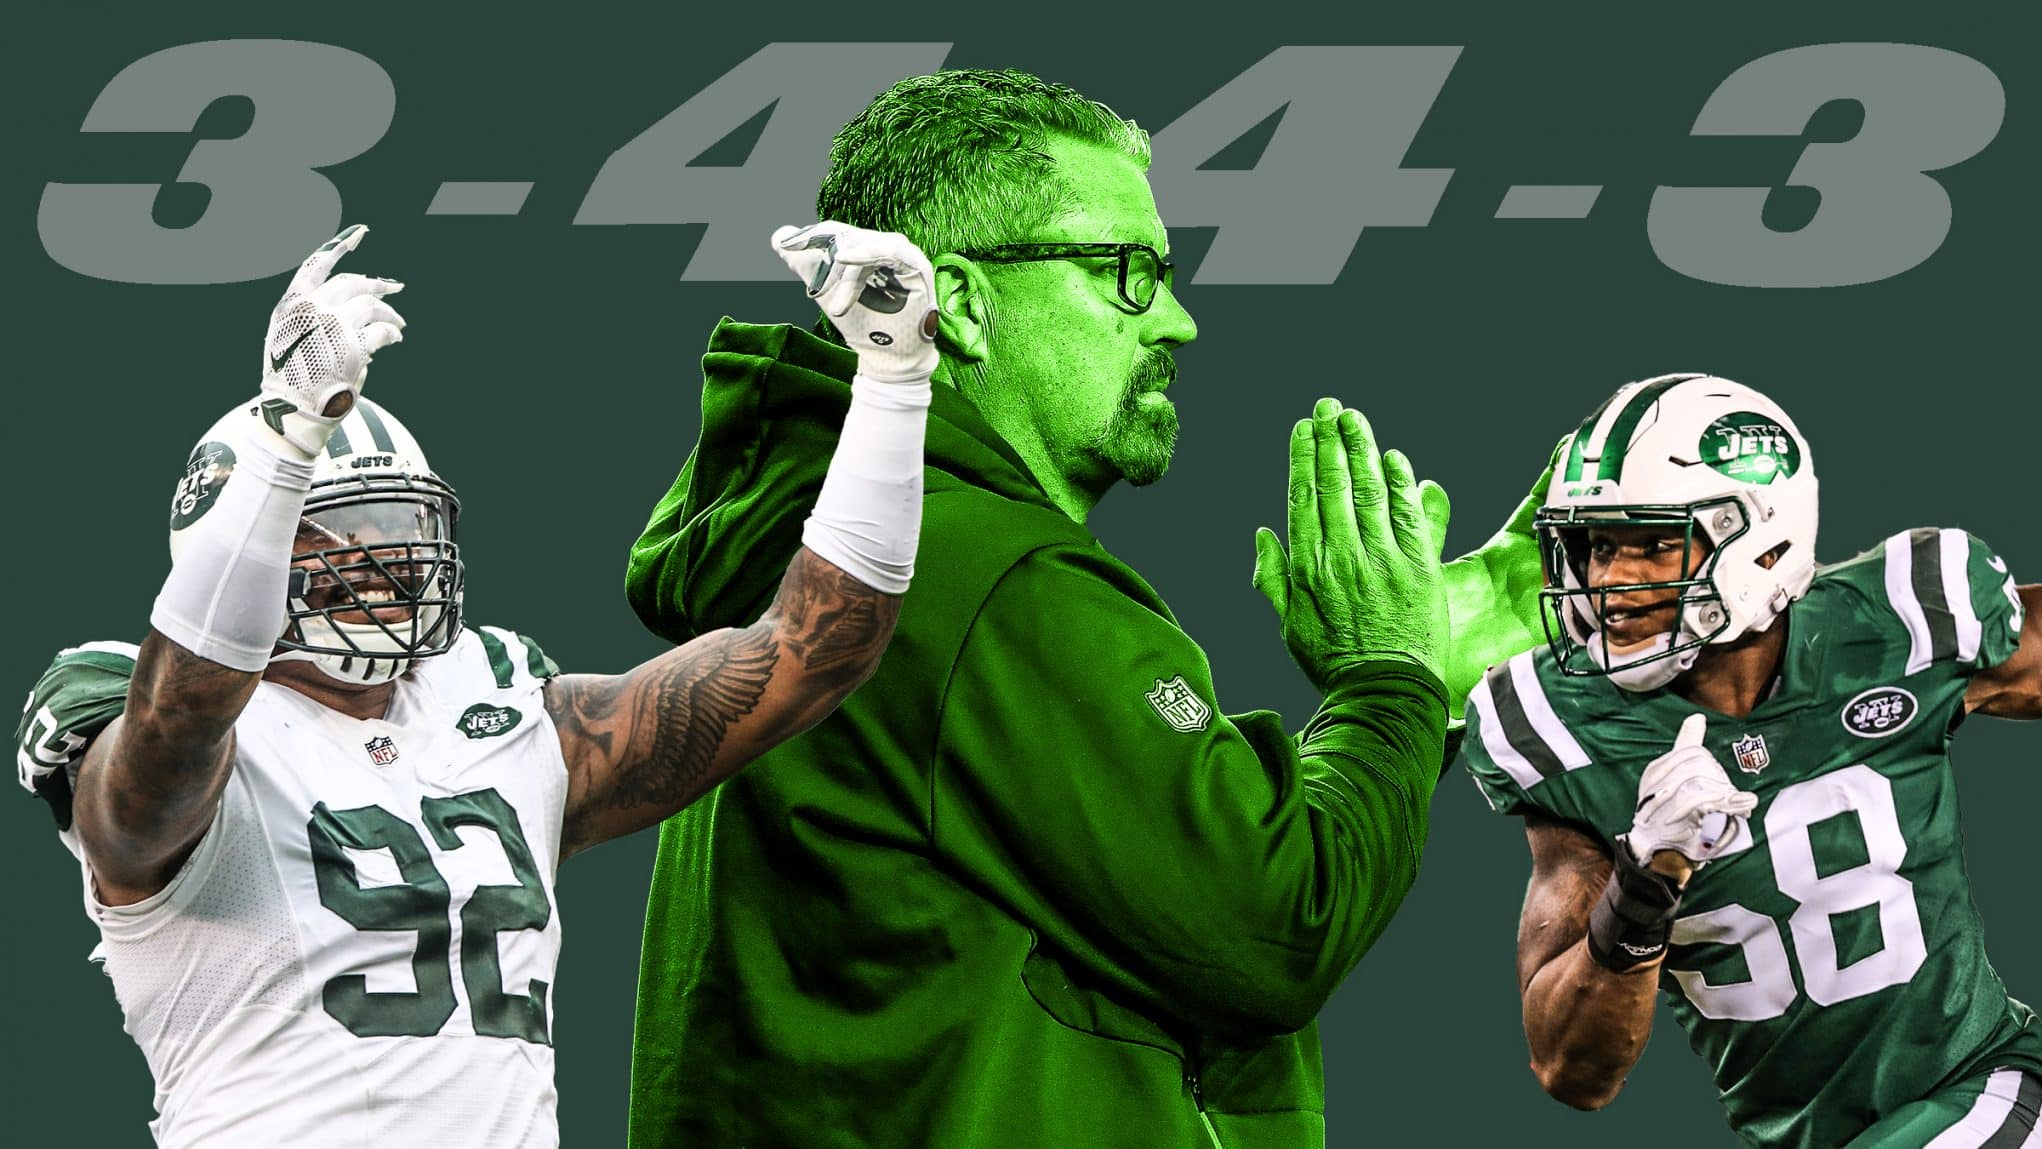 New York Jets  4-3 or 3-4 question is only important during the ... c336829a8